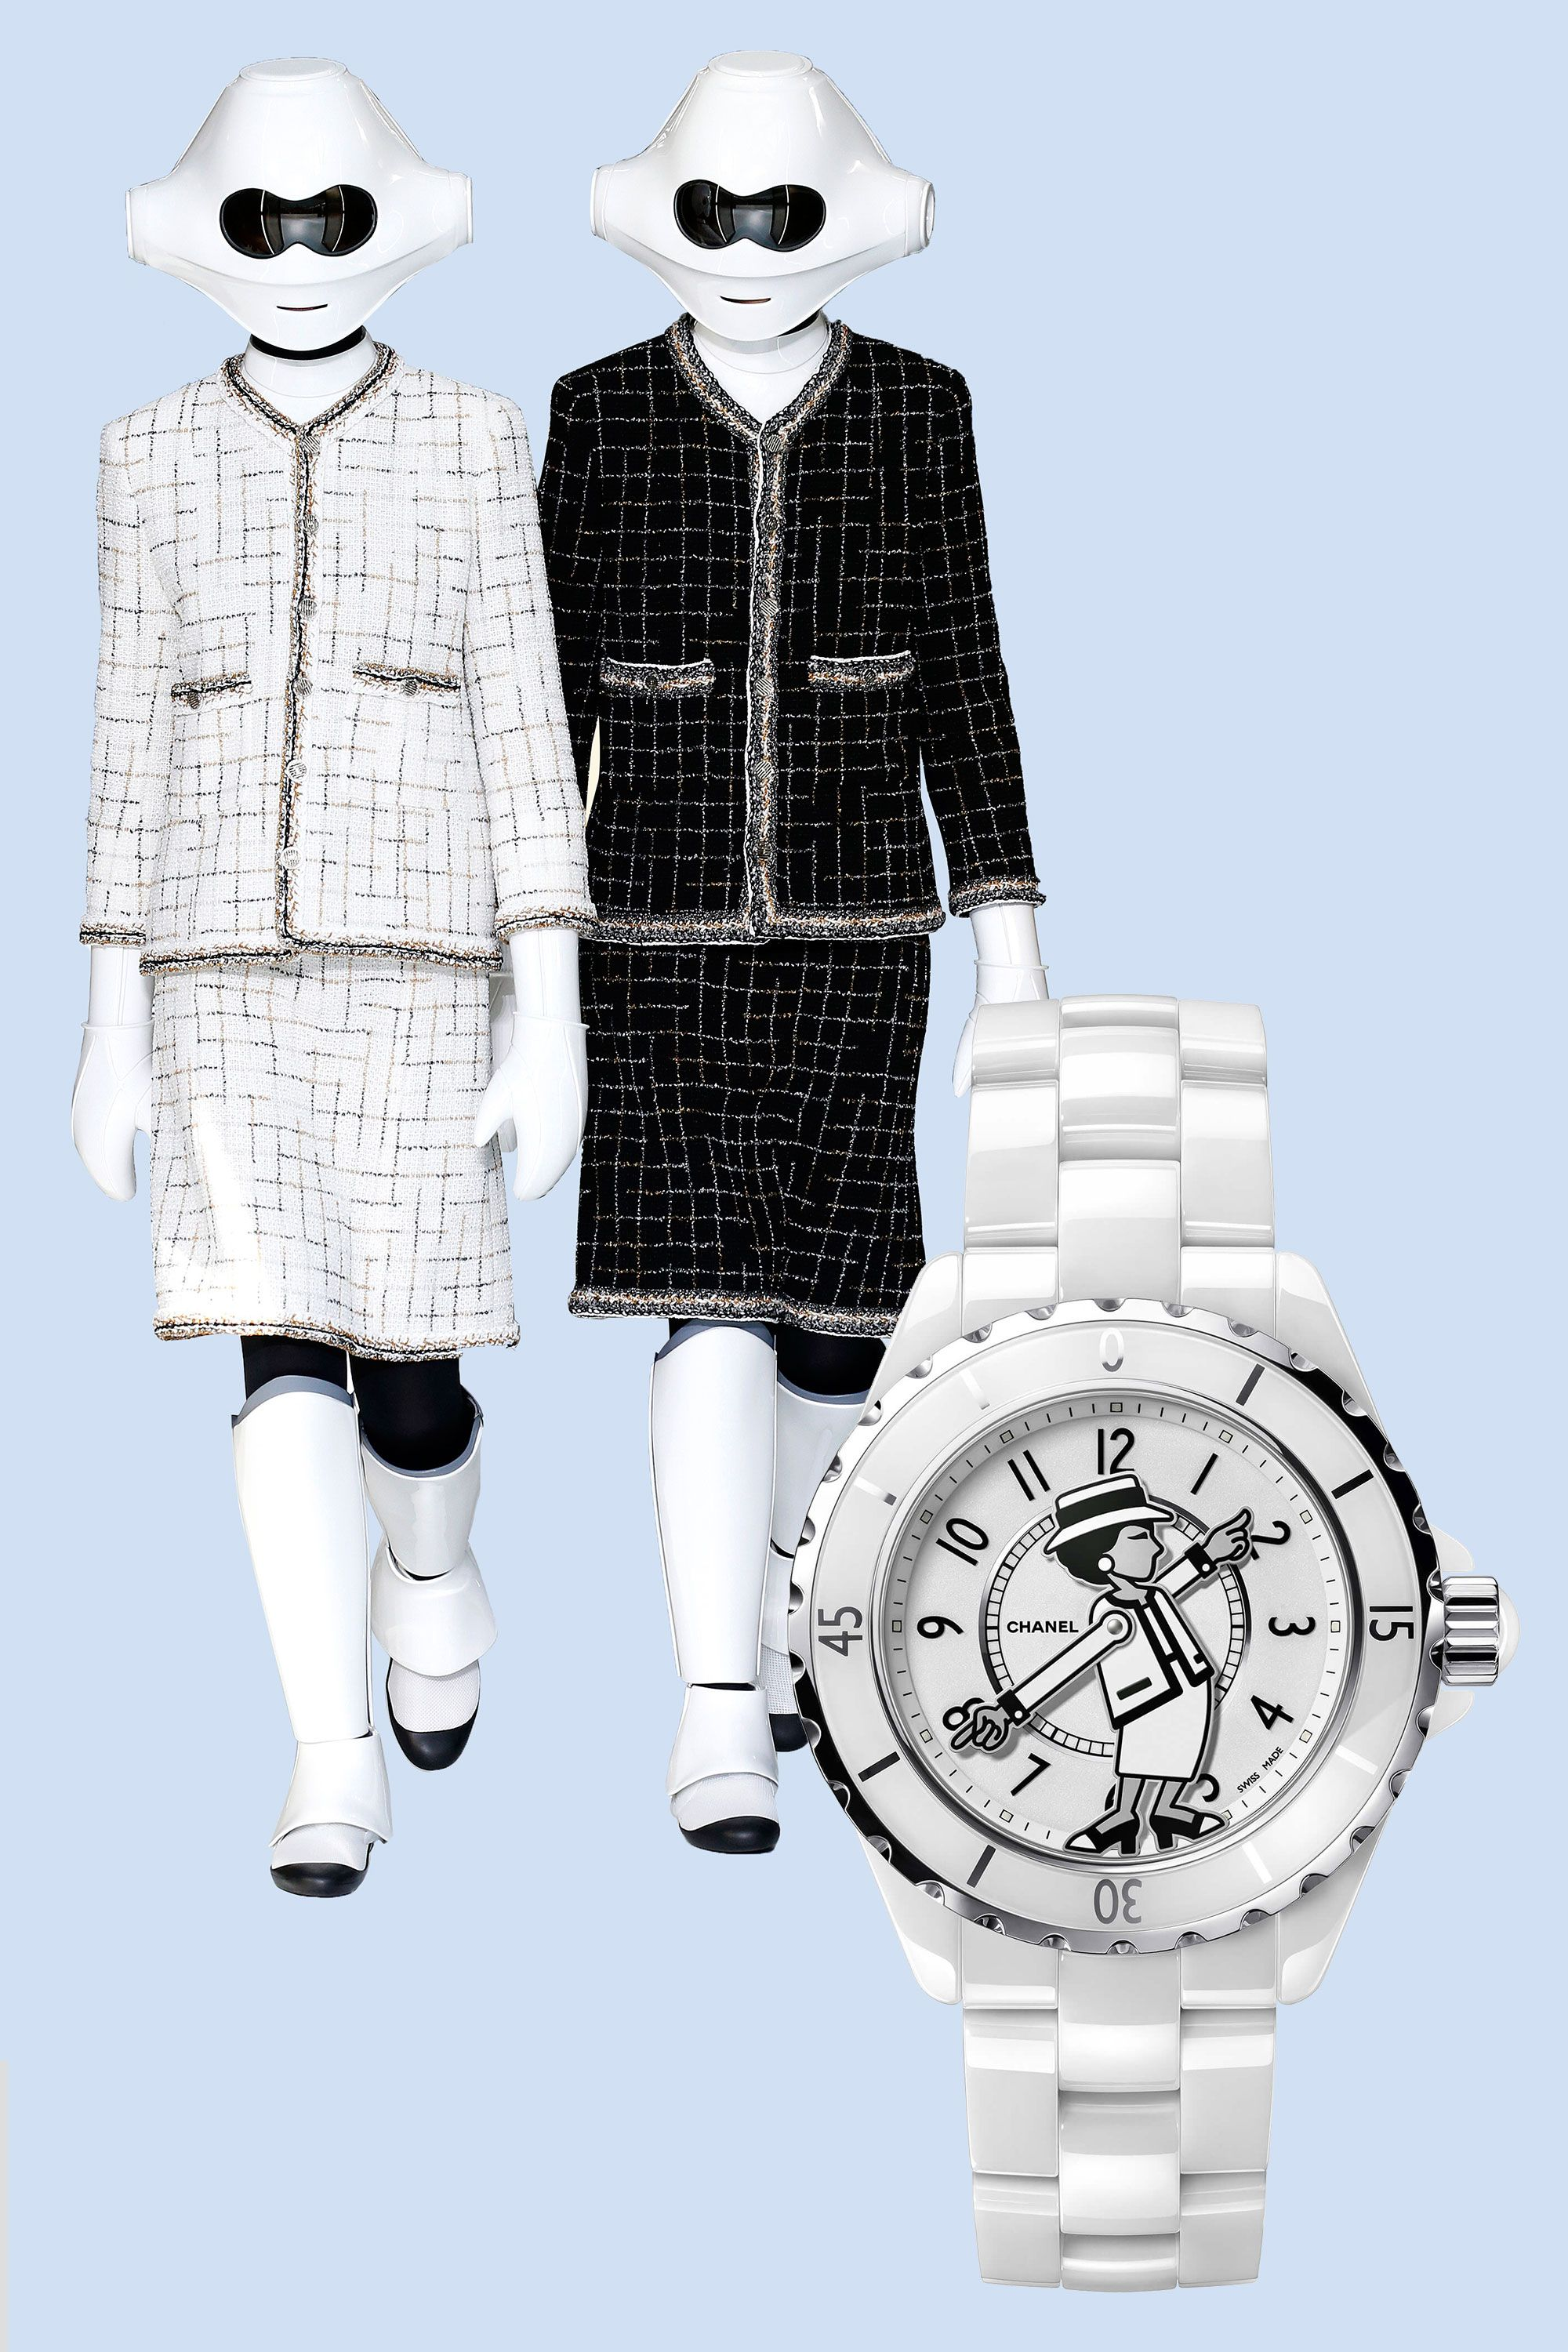 "<p>Chanel found inspiration in computers and modern technology for spring/summer '17 (even sending out a few models resembling futuristic robots), and its J12 watches totally fit the bill. The watch features the likeness of Coco herself, turned robotic <em data-redactor-tag=""em"" data-verified=""redactor"">and</em> functional: Her hands point out the hours and minutes. </p><p><em data-redactor-tag=""em"" data-verified=""redactor"">Mademoiselle J12, $7,200, </em><a href=""https://www.chanel.com/en_US/watches-jewelry/watches/p/mademoiselle-j12-watch/H5241"" target=""_blank"" data-tracking-id=""recirc-text-link""><em data-redactor-tag=""em"" data-verified=""redactor"">chanel.com</em></a></p>"